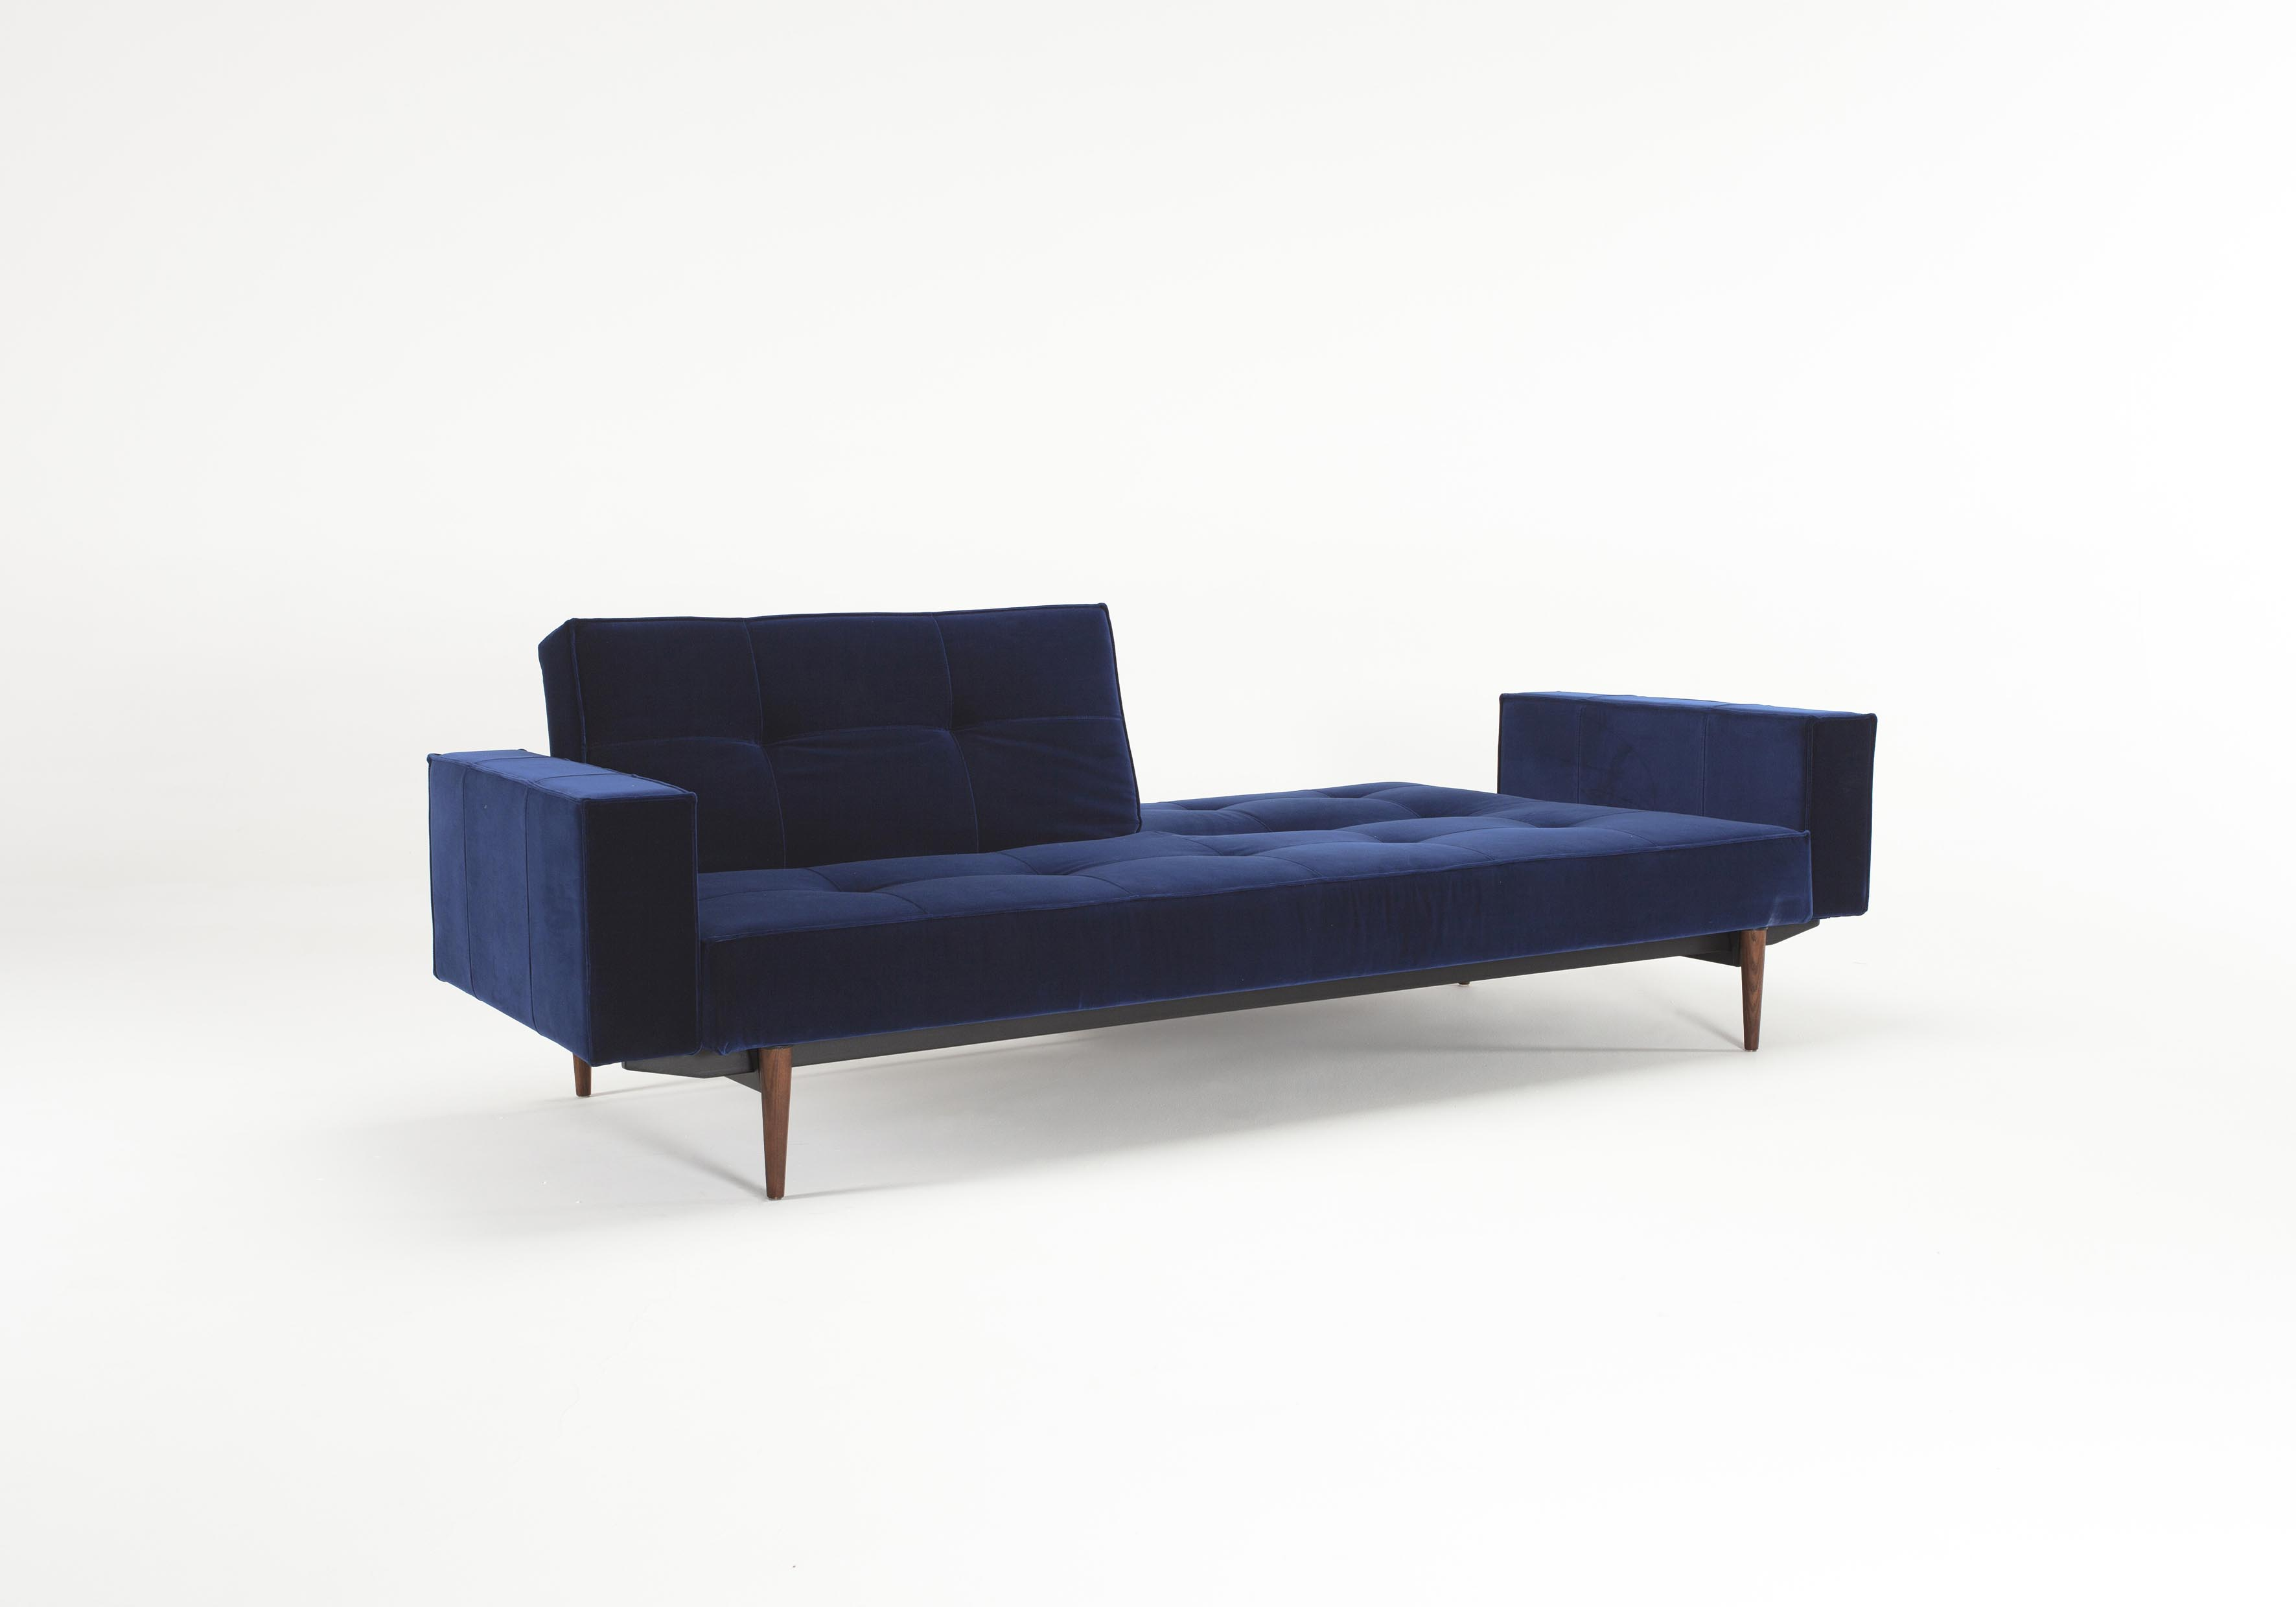 splitback sofa bed w arms vintage velvet blue by innovation. Black Bedroom Furniture Sets. Home Design Ideas